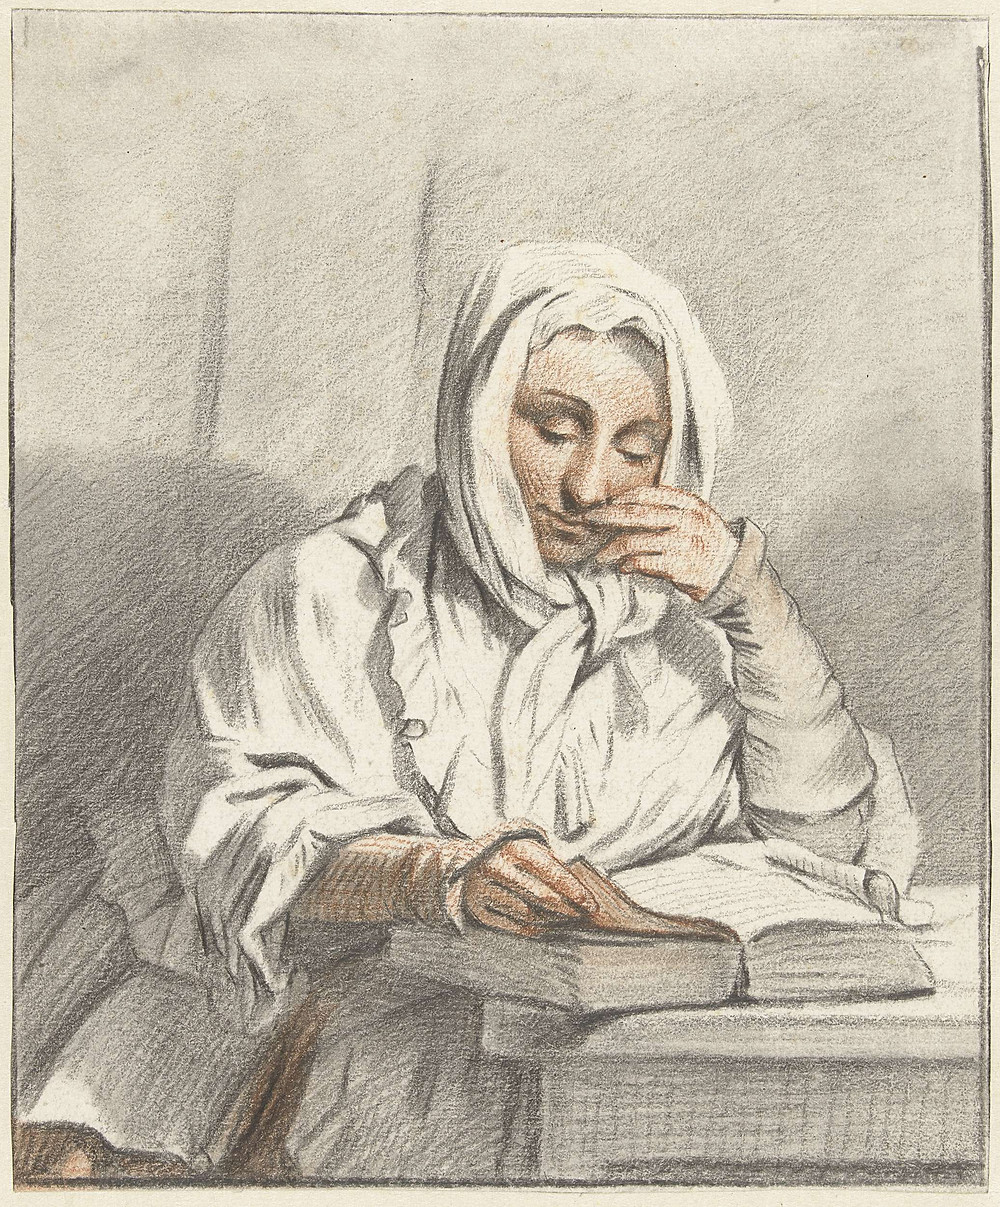 Young Woman Reading Book from the Rijksmuseum